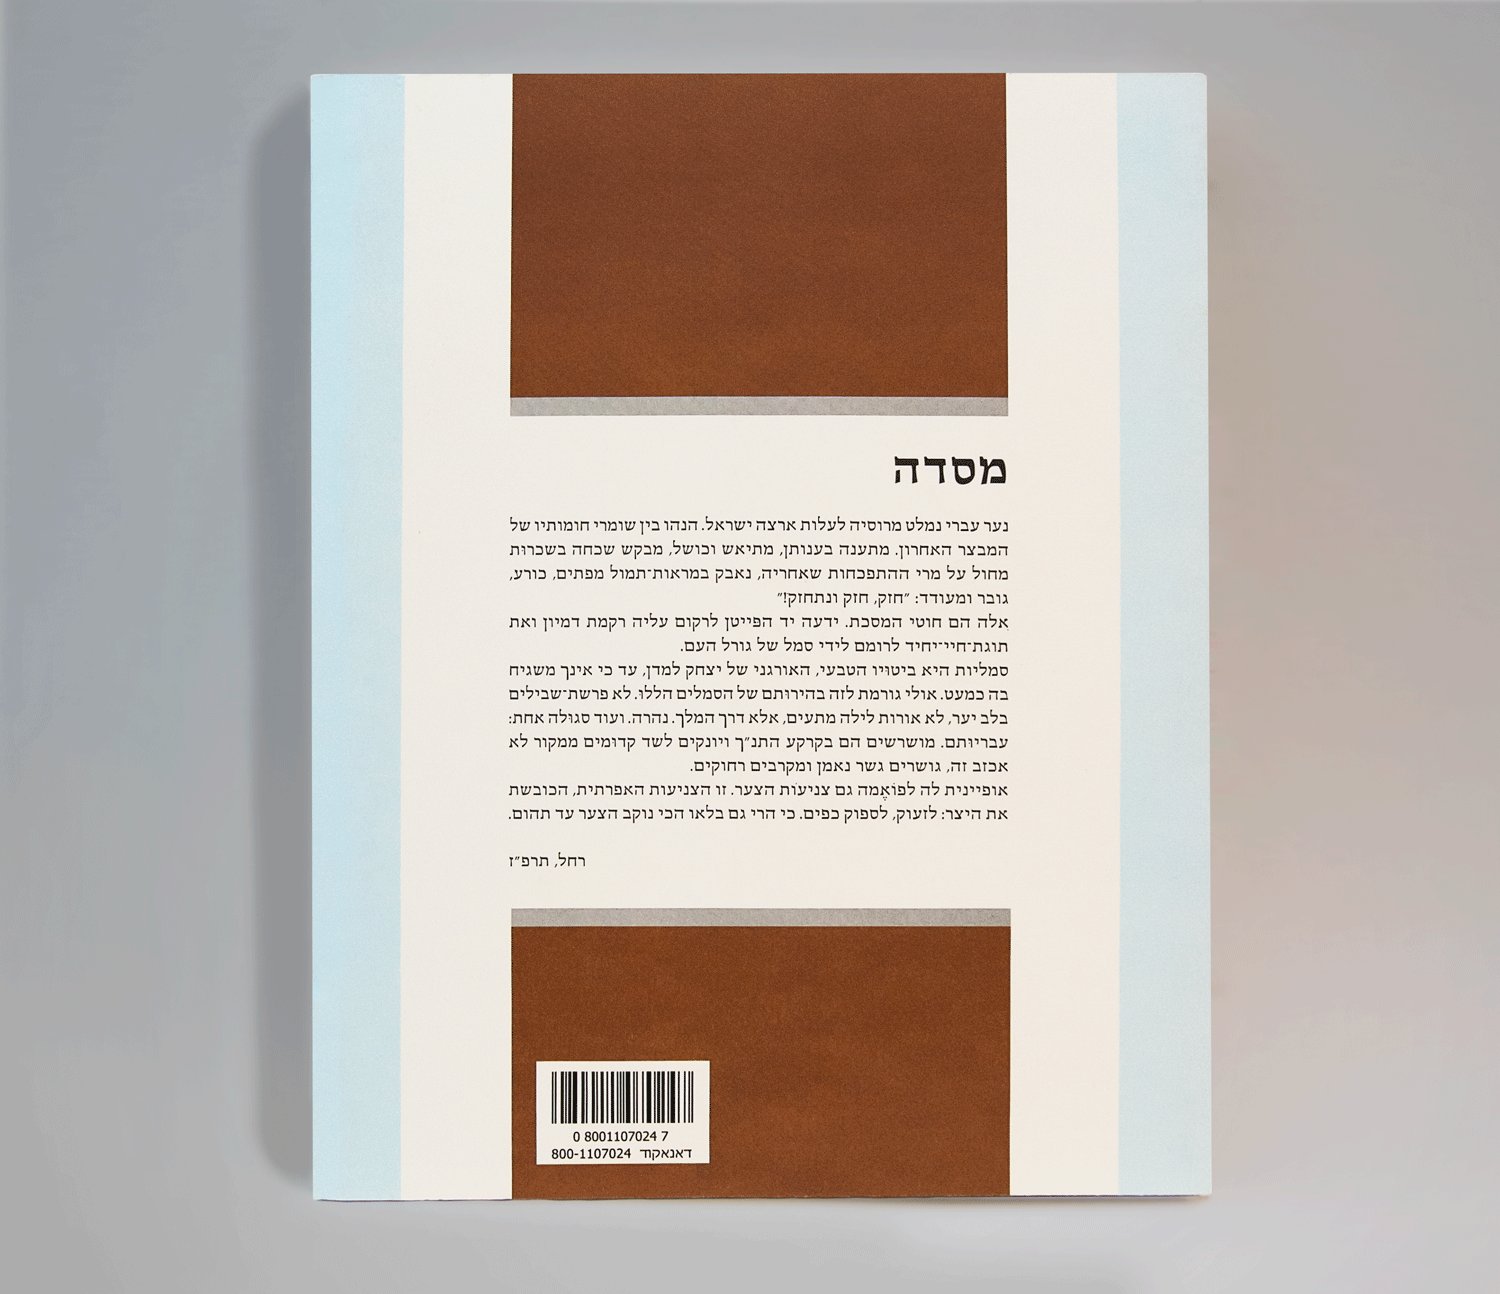 https://bigeyes.co.il/wp-content/uploads/2019/04/masada-back-long.png